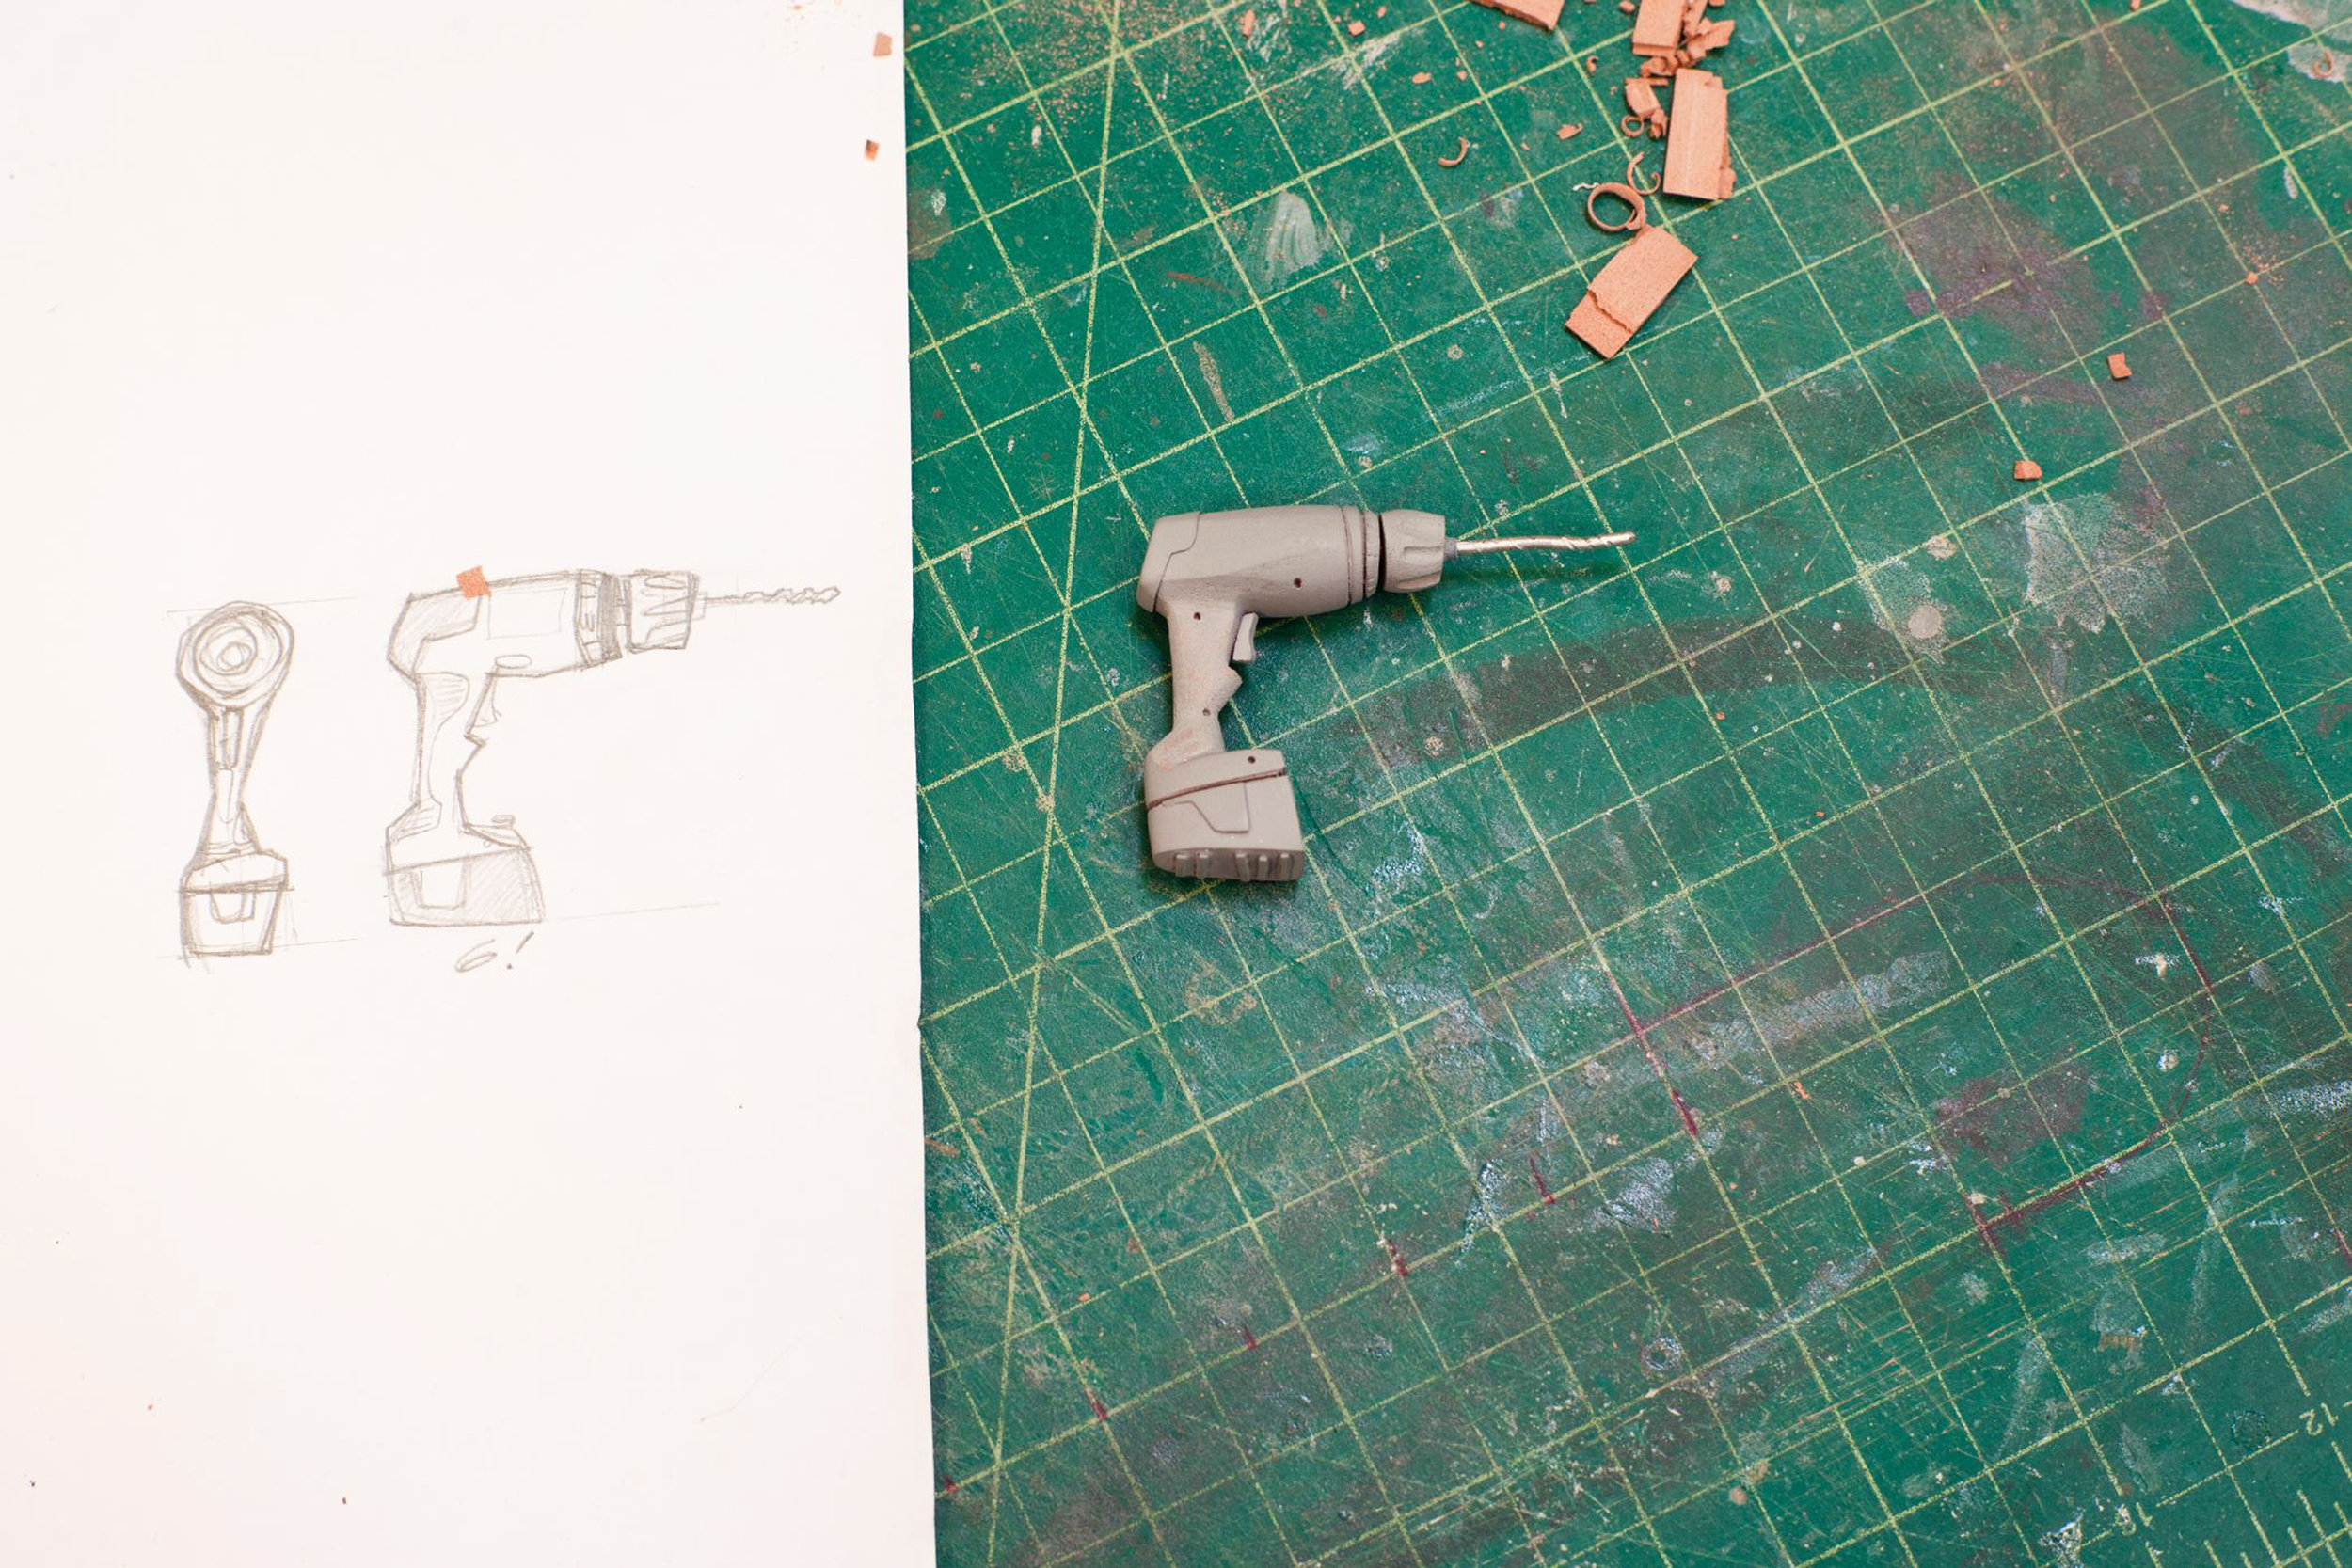 A drill goes from sketch to prop for ParaNorman, the new 3D stop-motion comedy thriller.  Credit: LAIKA, Inc.